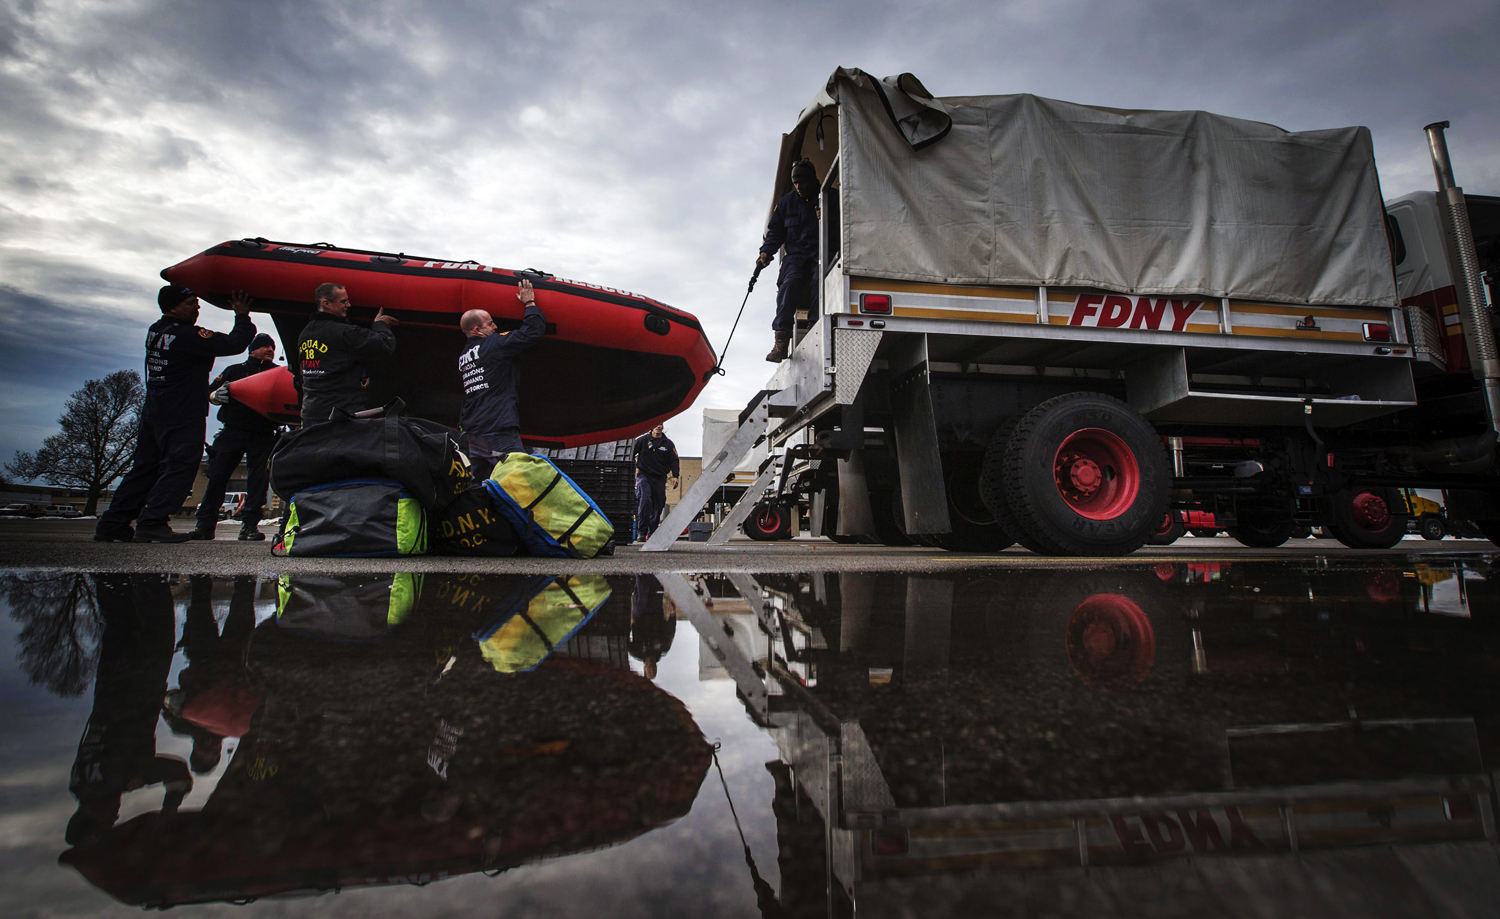 Firefighters from New York City load a rescue boat to prepare for possible flooding following a massive snow storm in Williamsville, New York on November 23, 2014.